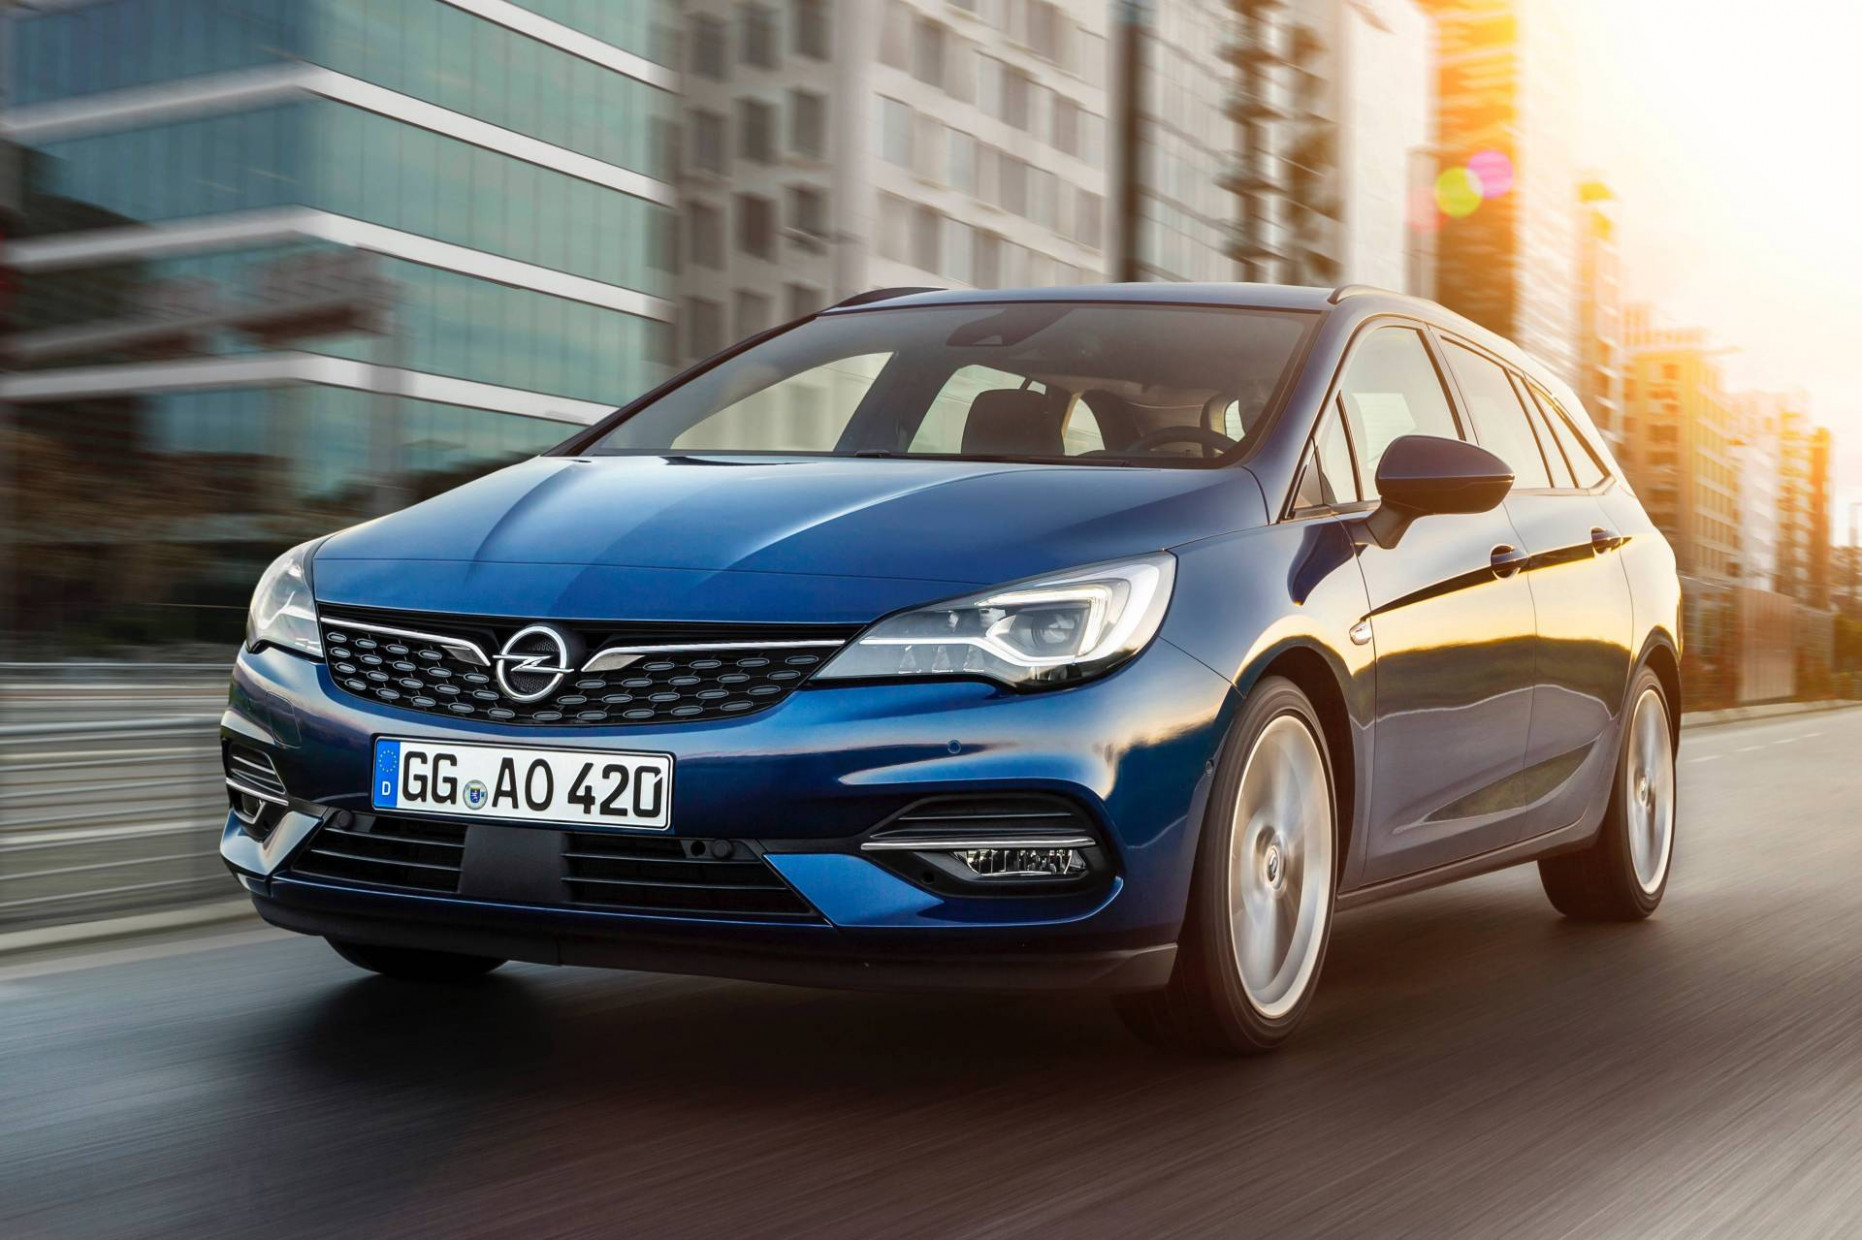 prices opel astra k sports tourer 2022 - cars review